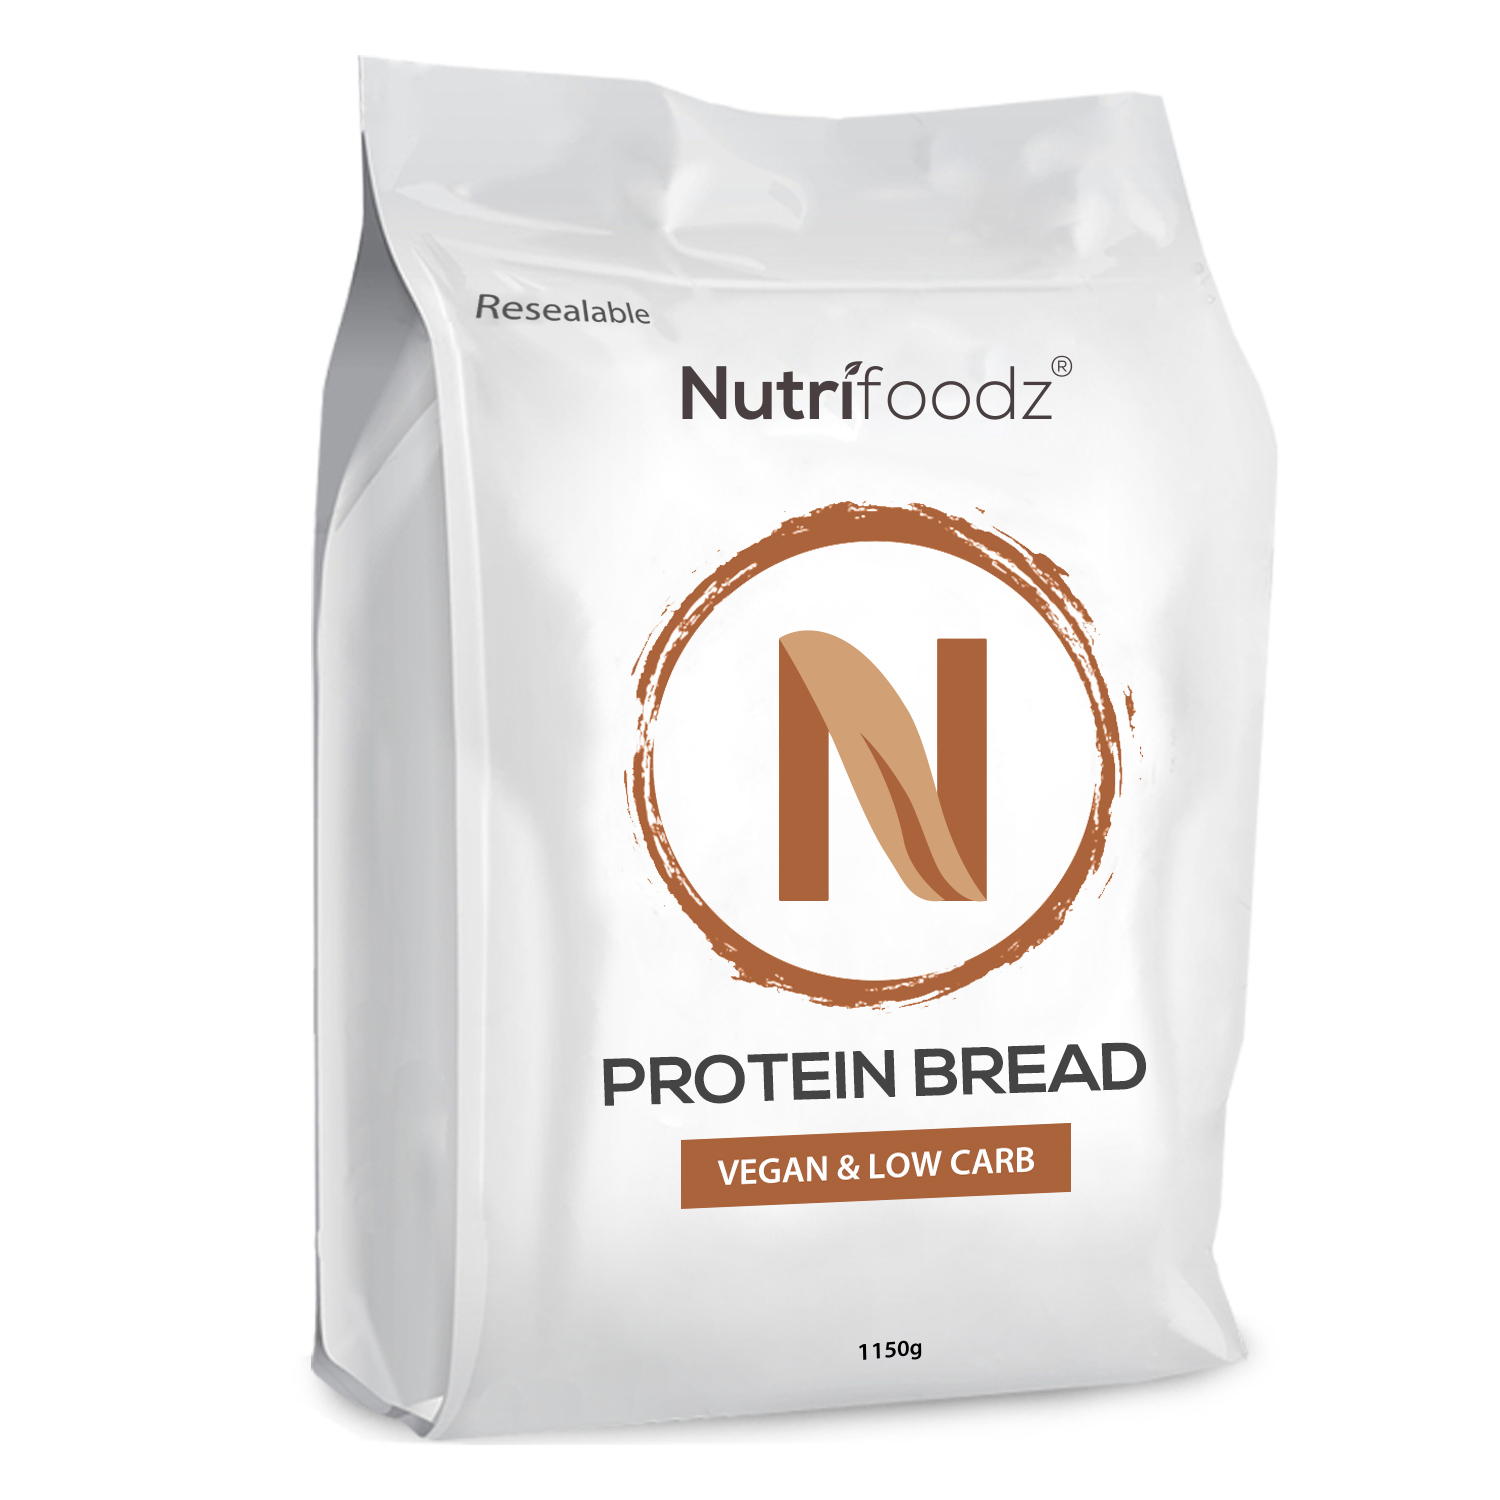 Protein Bread - 3 pack nutrition